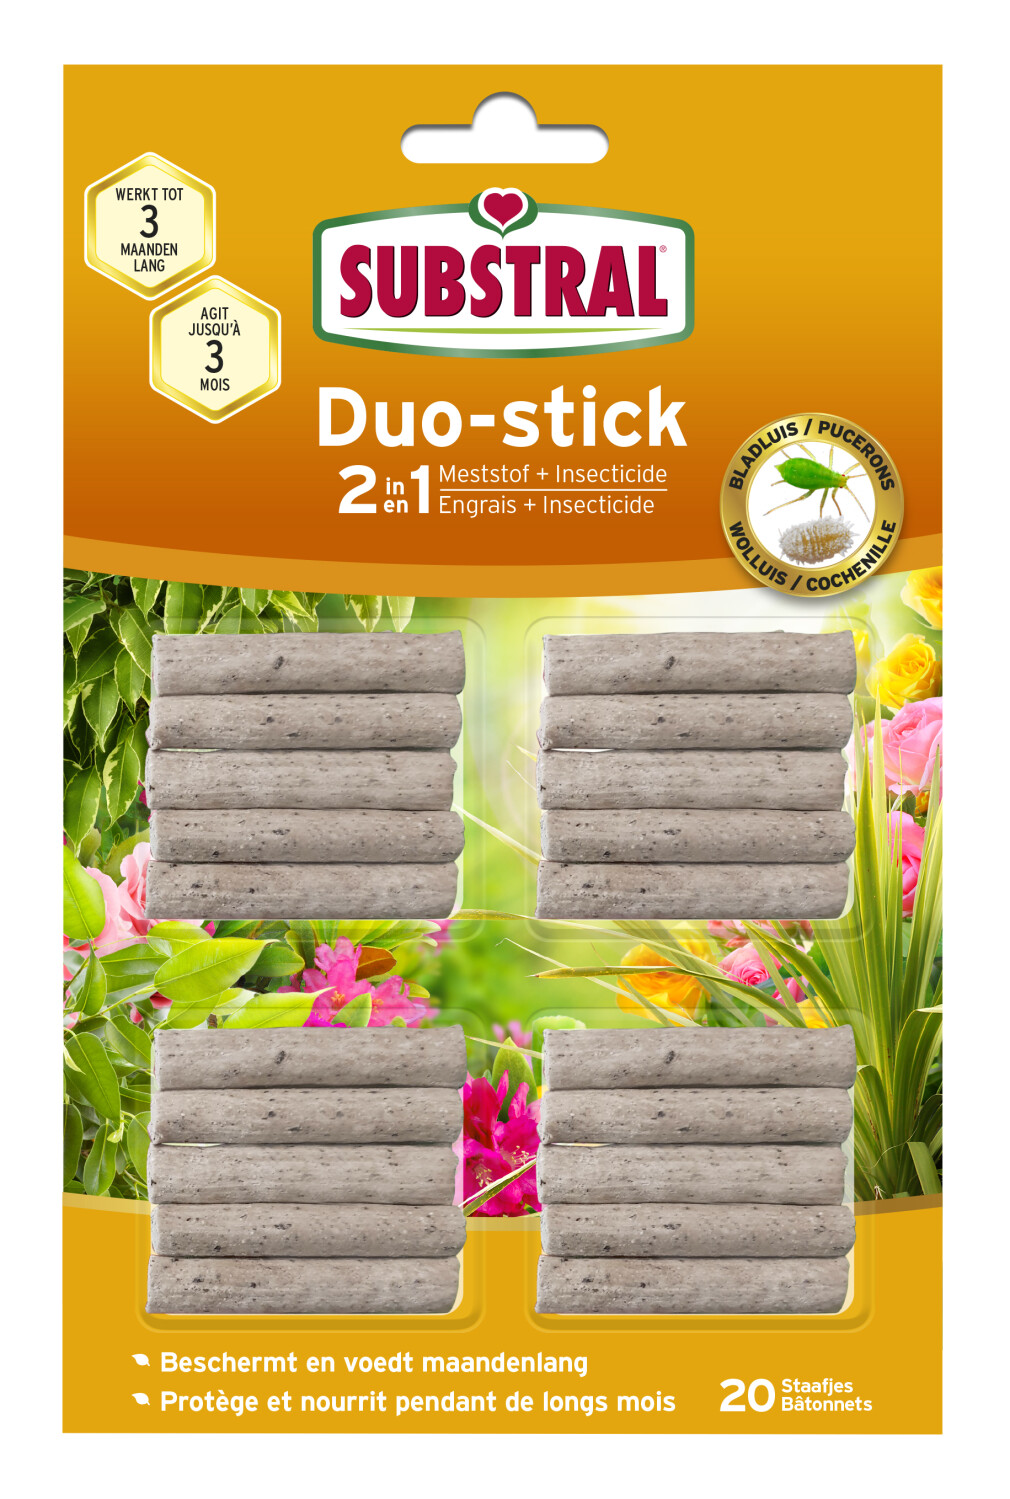 Duostick Substral meststof en insecticide 2 in 1